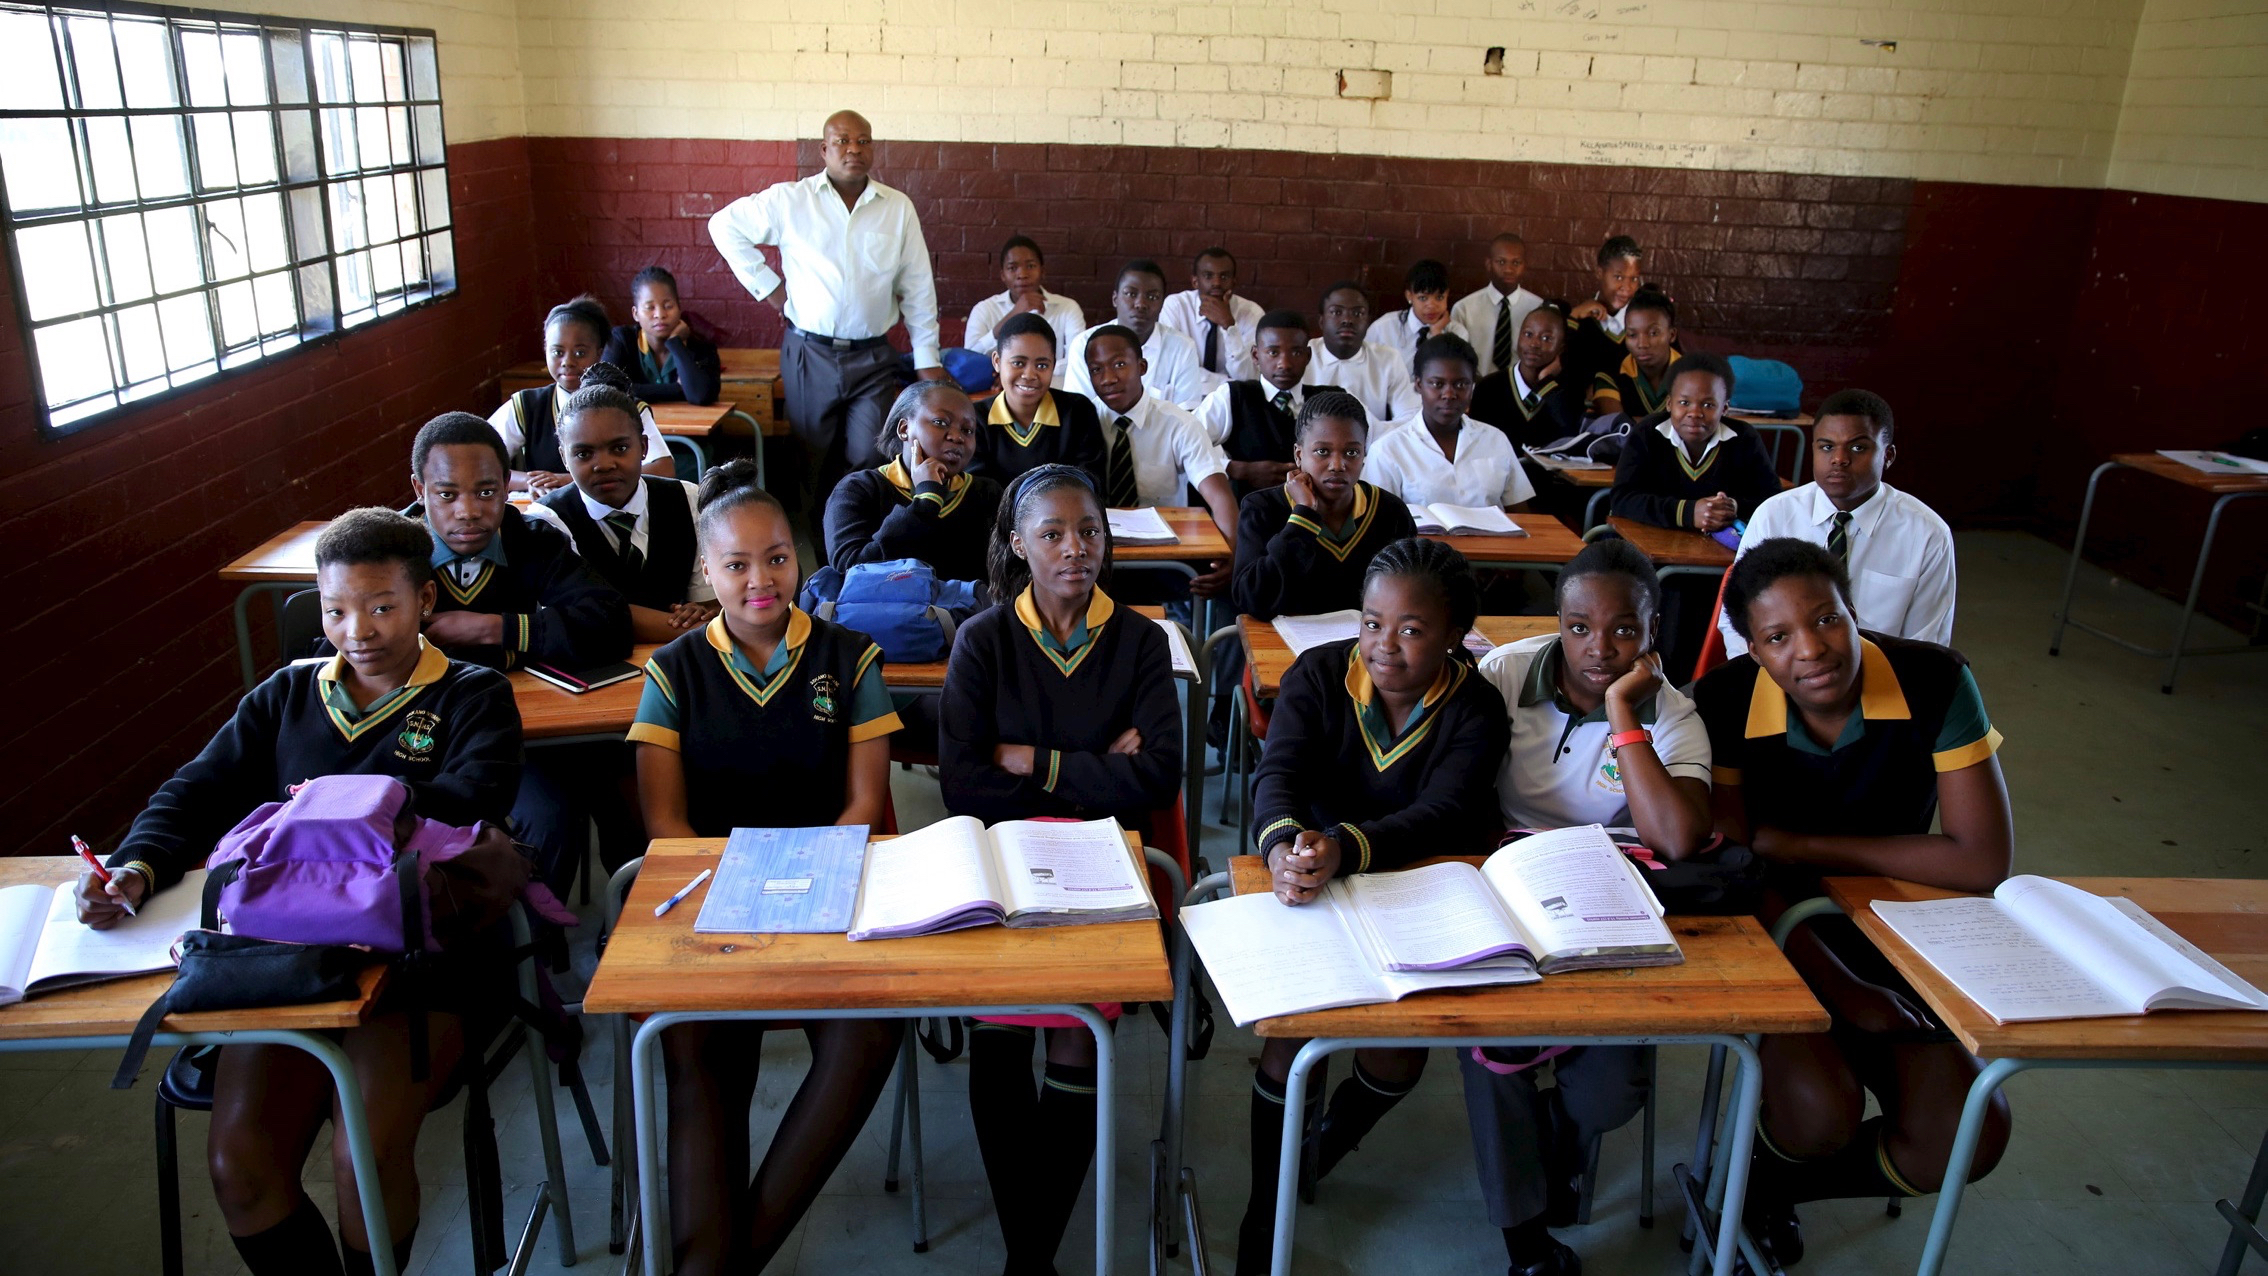 "Teacher Reginald Sikhwari poses for a picture with his class of grade 11 students at Sekano-Ntoane school in Soweto, South Africa, September 17, 2015. Nearly three years after Taliban gunmen shot Pakistani schoolgirl Malala Yousafzai, the teenage activist last week urged world leaders gathered in New York to help millions more children go to school. World Teachers' Day falls on 5 October, a Unesco initiative highlighting the work of educators struggling to teach children amid intimidation in Pakistan, conflict in Syria or poverty in Vietnam. Even so, there have been some improvements: the number of children not attending primary school has plummeted to an estimated 57 million worldwide in 2015, the U.N. says, down from 100 million 15 years ago. Reuters photographers have documented learning around the world, from well-resourced schools to pupils crammed into corridors in the Philippines, on boats in Brazil or in crowded classrooms in Burundi. REUTERS/Siphiwe Sibeko PICTURE 39 OF 47 FOR WIDER IMAGE STORY ""SCHOOLS AROUND THE WORLD""SEARCH ""EDUCATORS SCHOOLS"" FOR ALL IMAGES - RTS2DWQ"